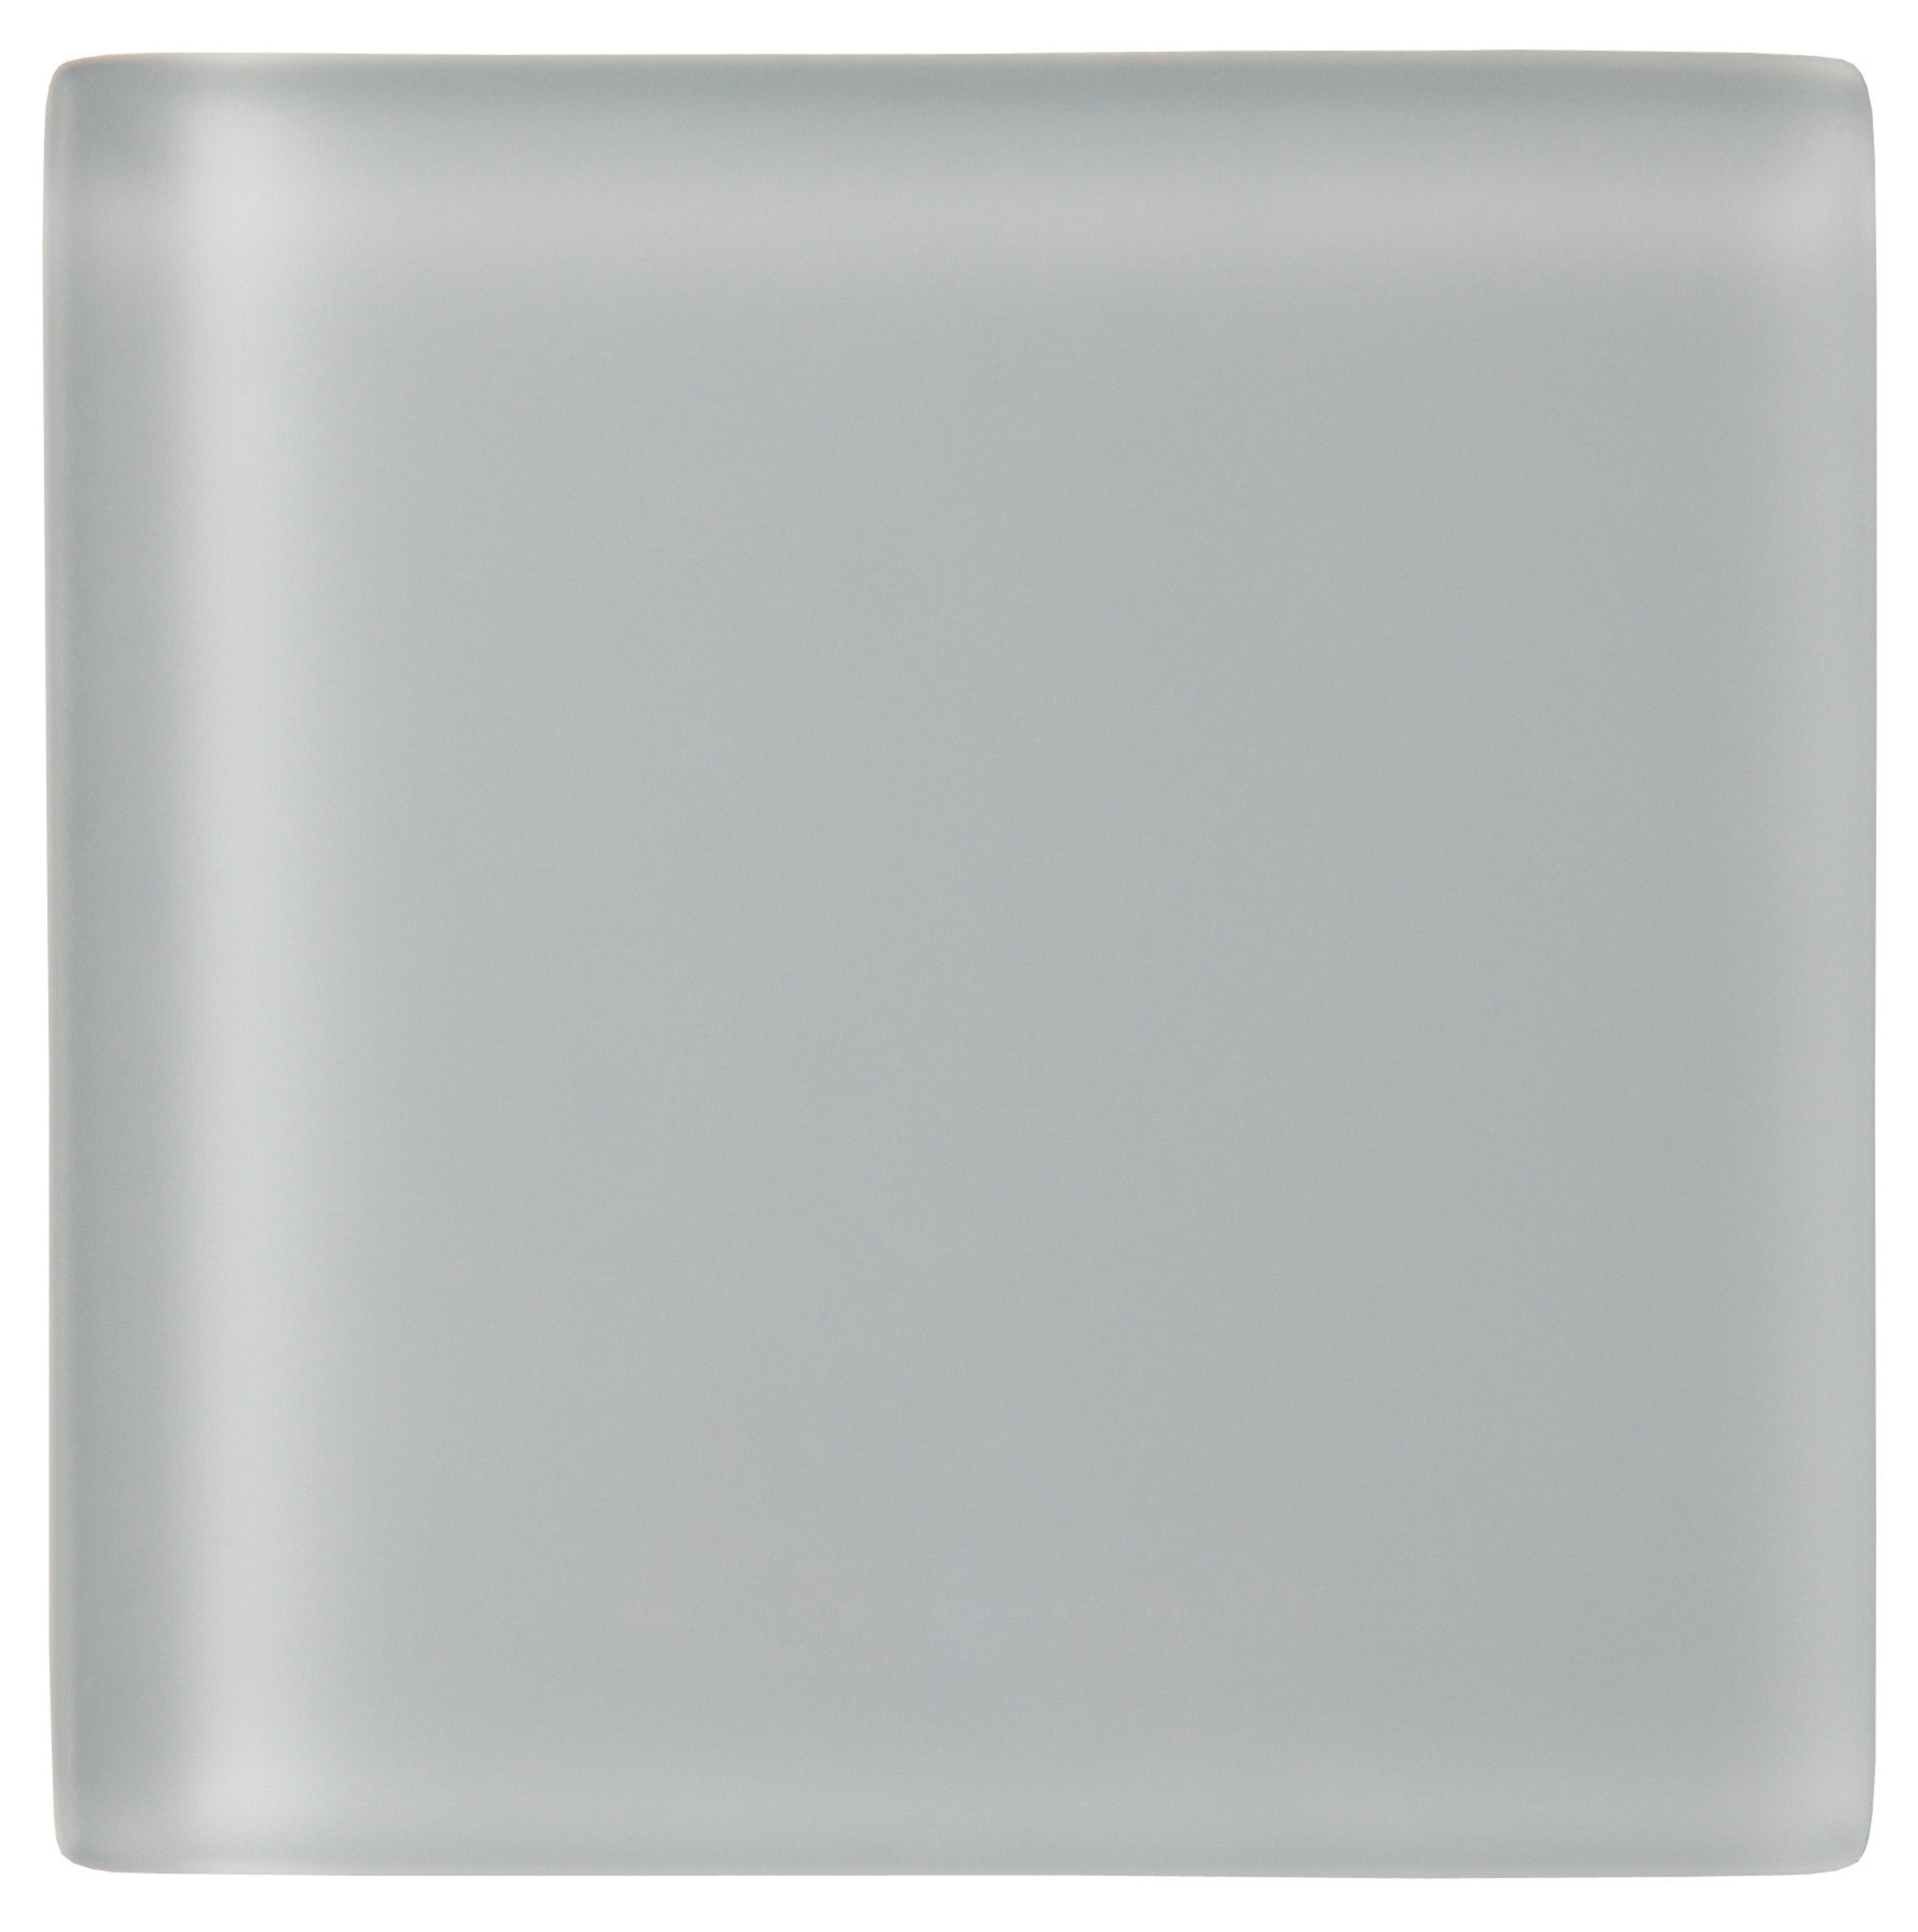 Os Glassworks Wall Ceramic Tiles